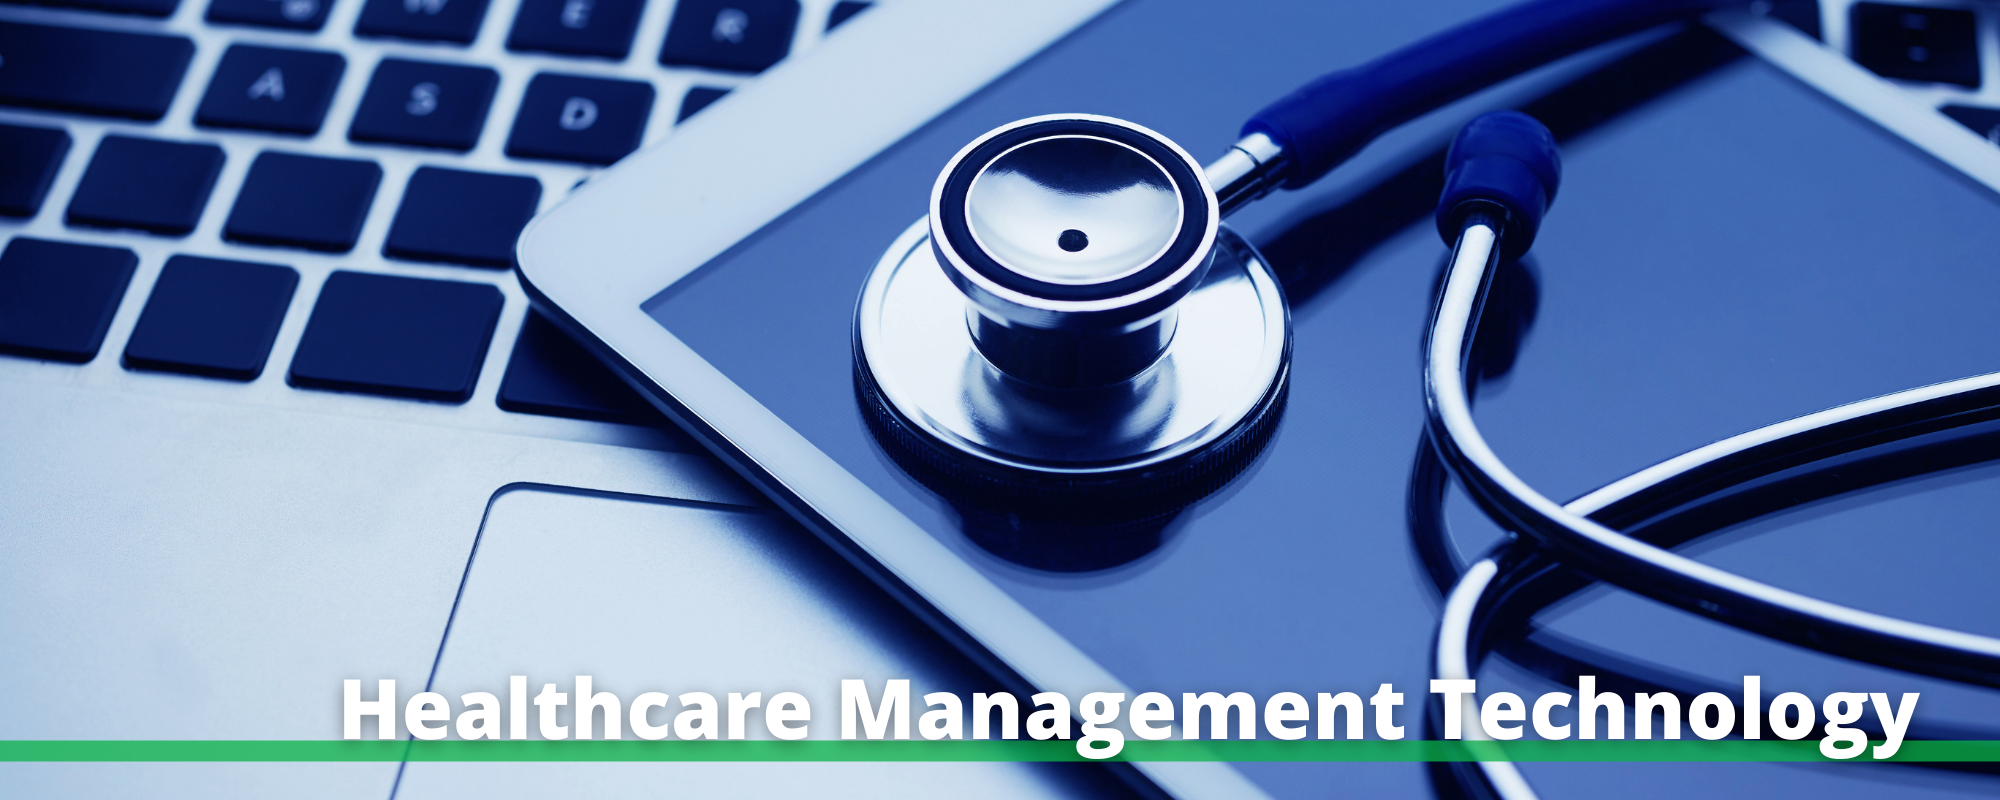 """Image of a laptop with a stethoscope and the words """"Healthcare Management Technology"""" printed below"""